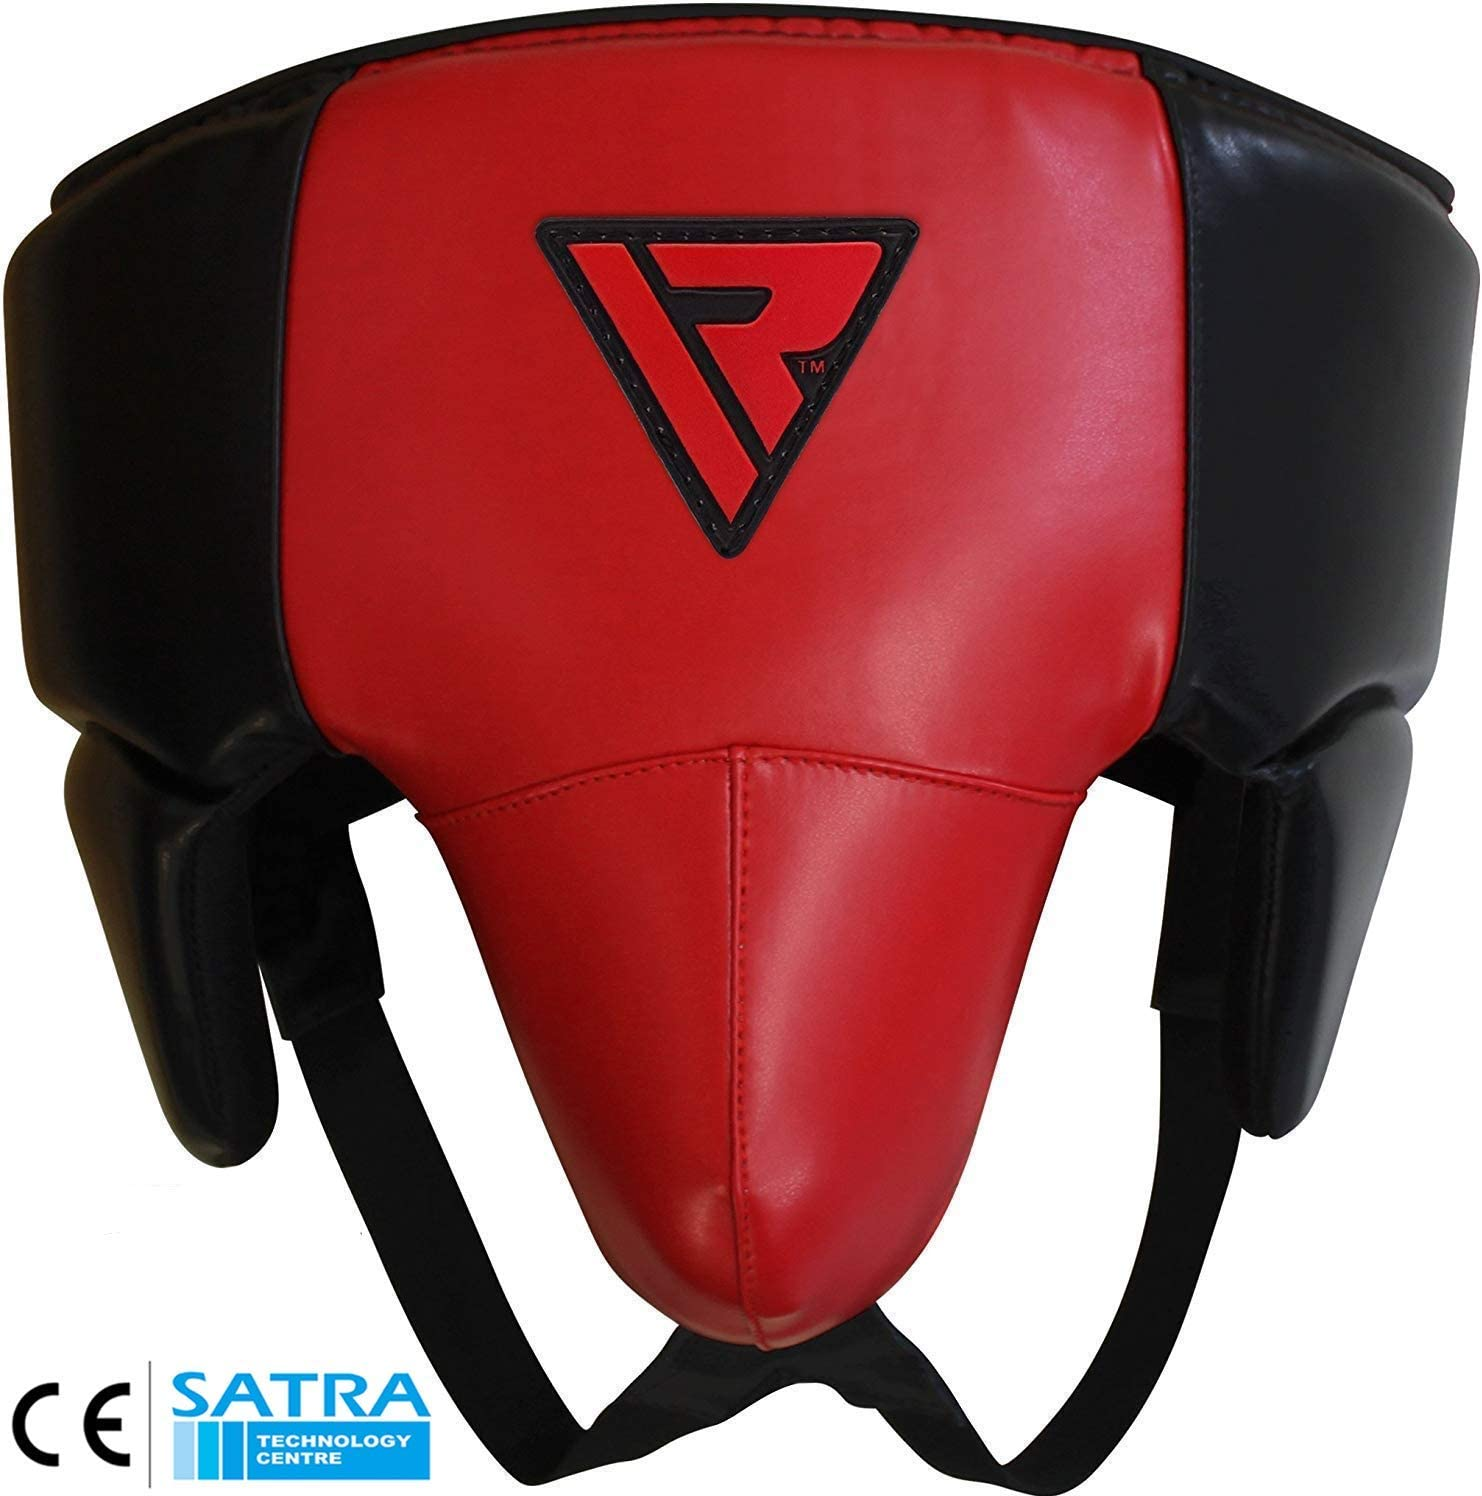 Red//Black Ringside Groin Abdominal Boxing Protector